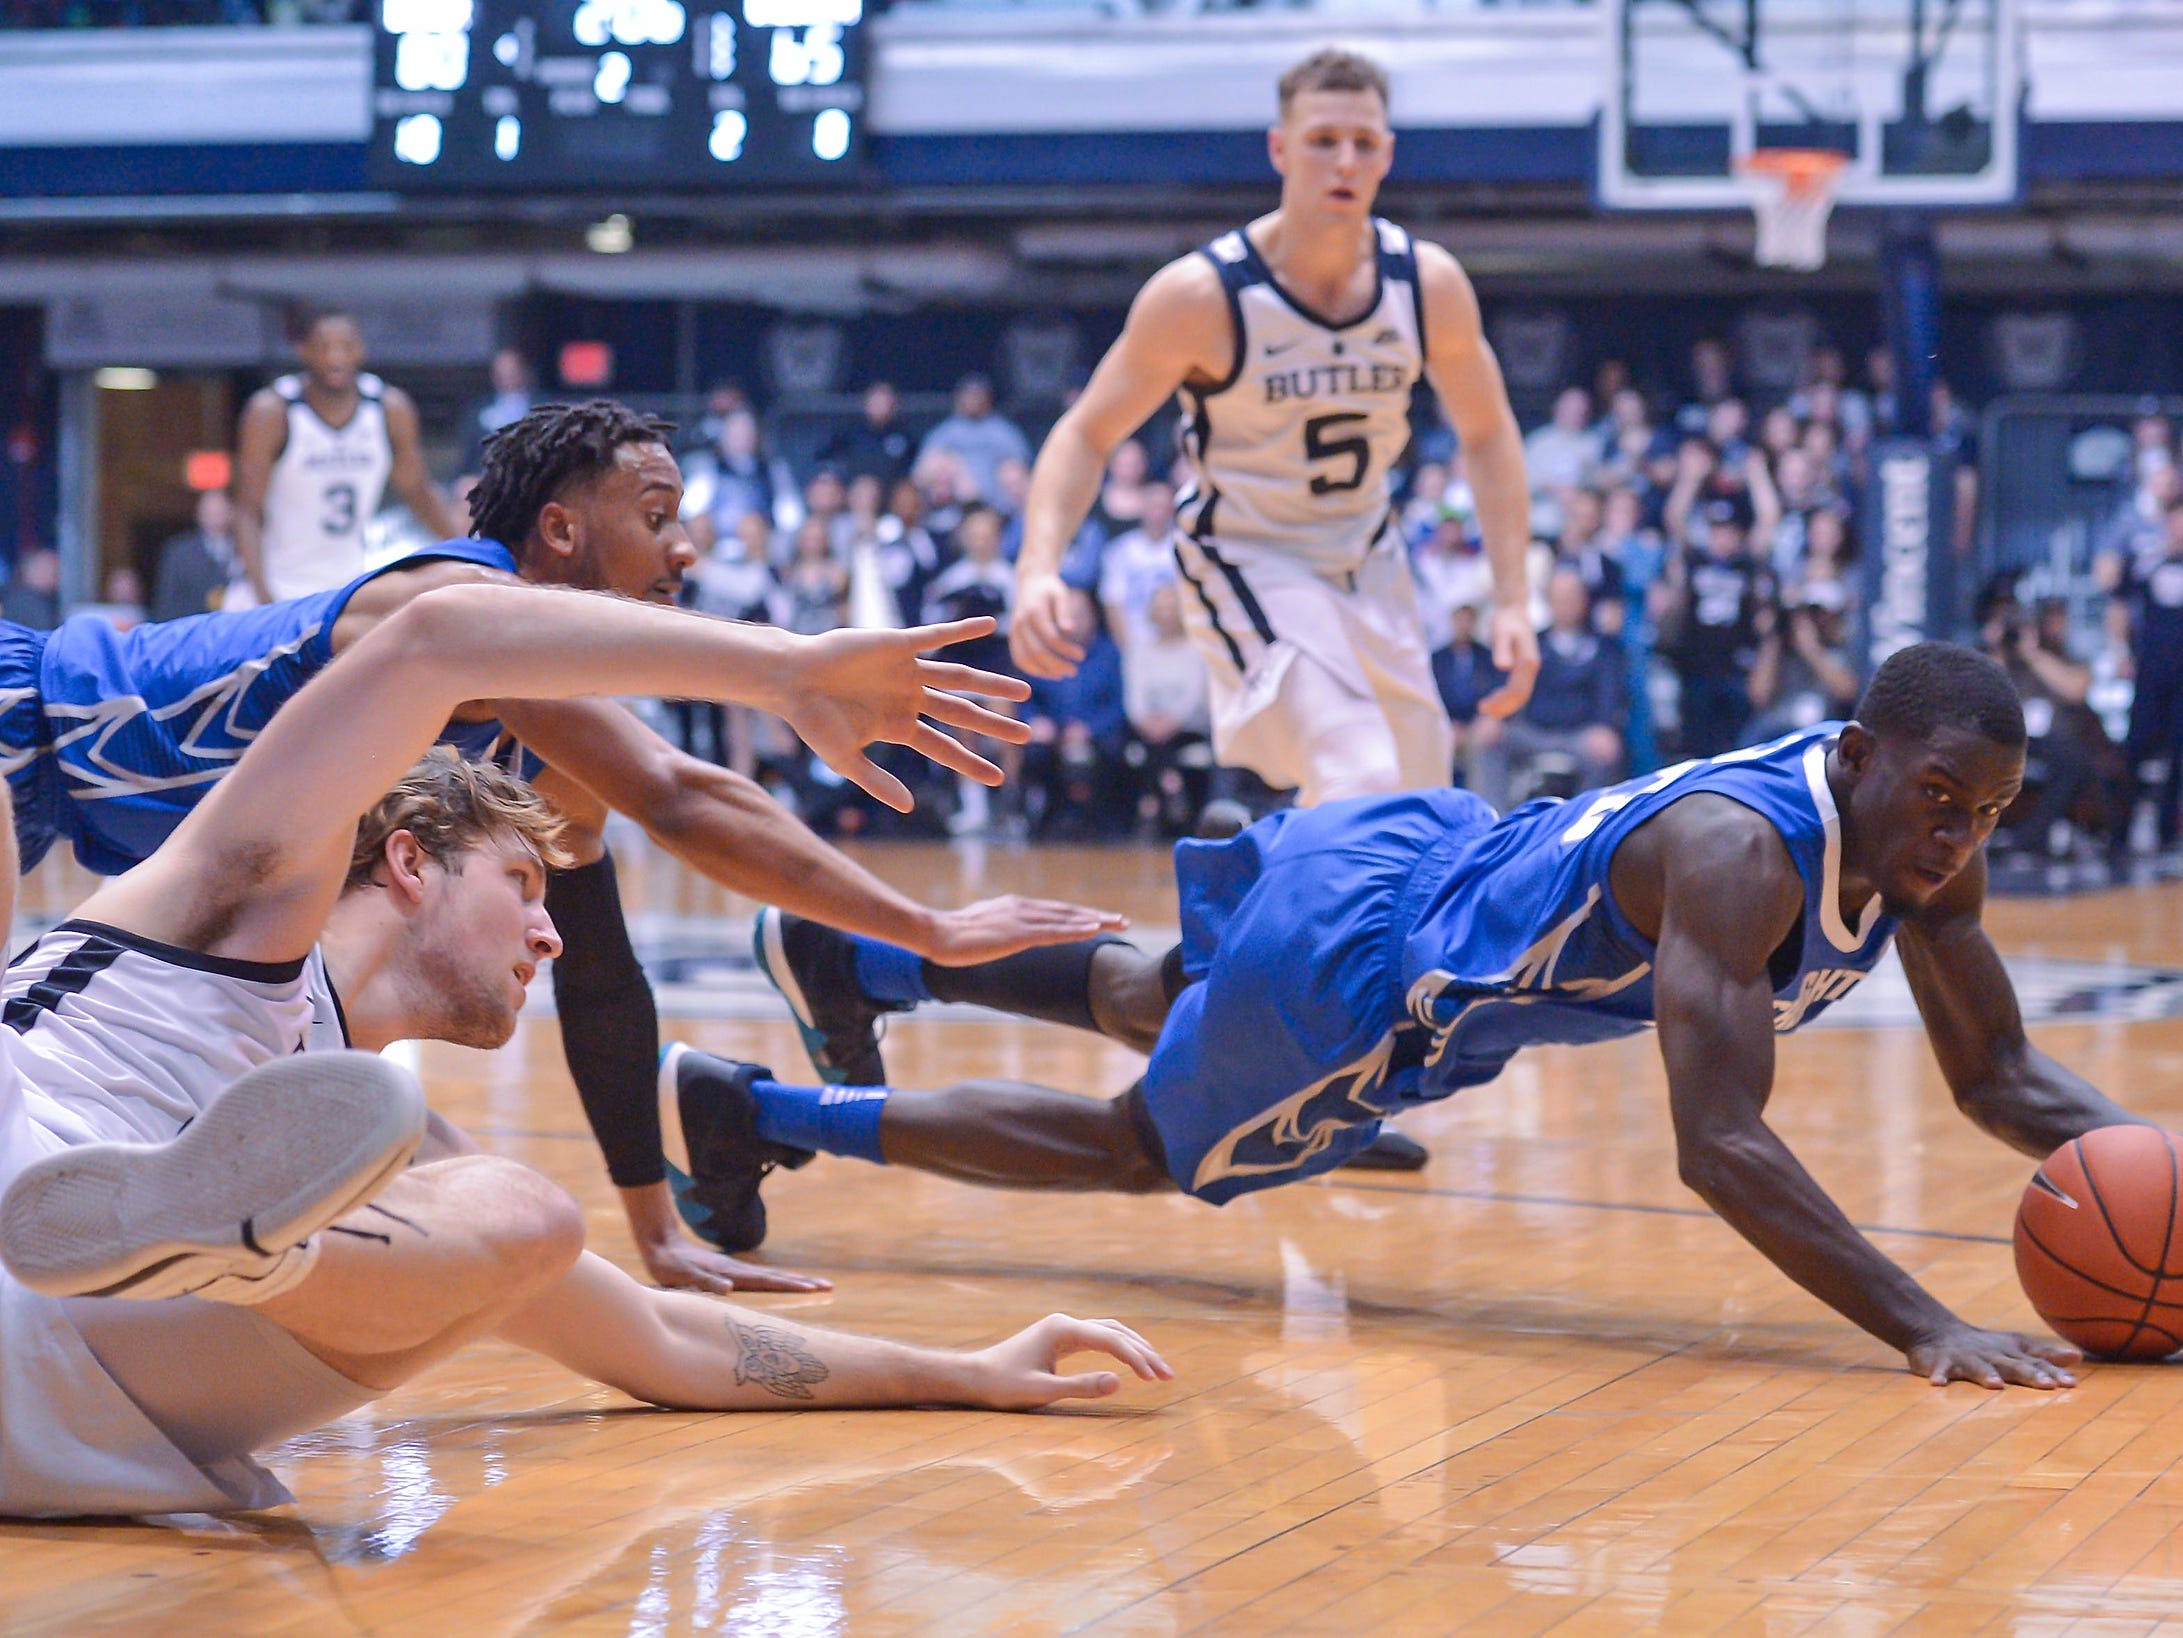 Creighton Bluejays forward Damien Jefferson (23) dives for a steal against the Butler Bulldogs during the second half of game action between Butler University and Creighton University, at Hinkle Fieldhouse in Indianapolis, Indiana on Saturday, Jan. 5, 2019. The Butler Bulldogs defeated the Creighton Bluejays 84-69.